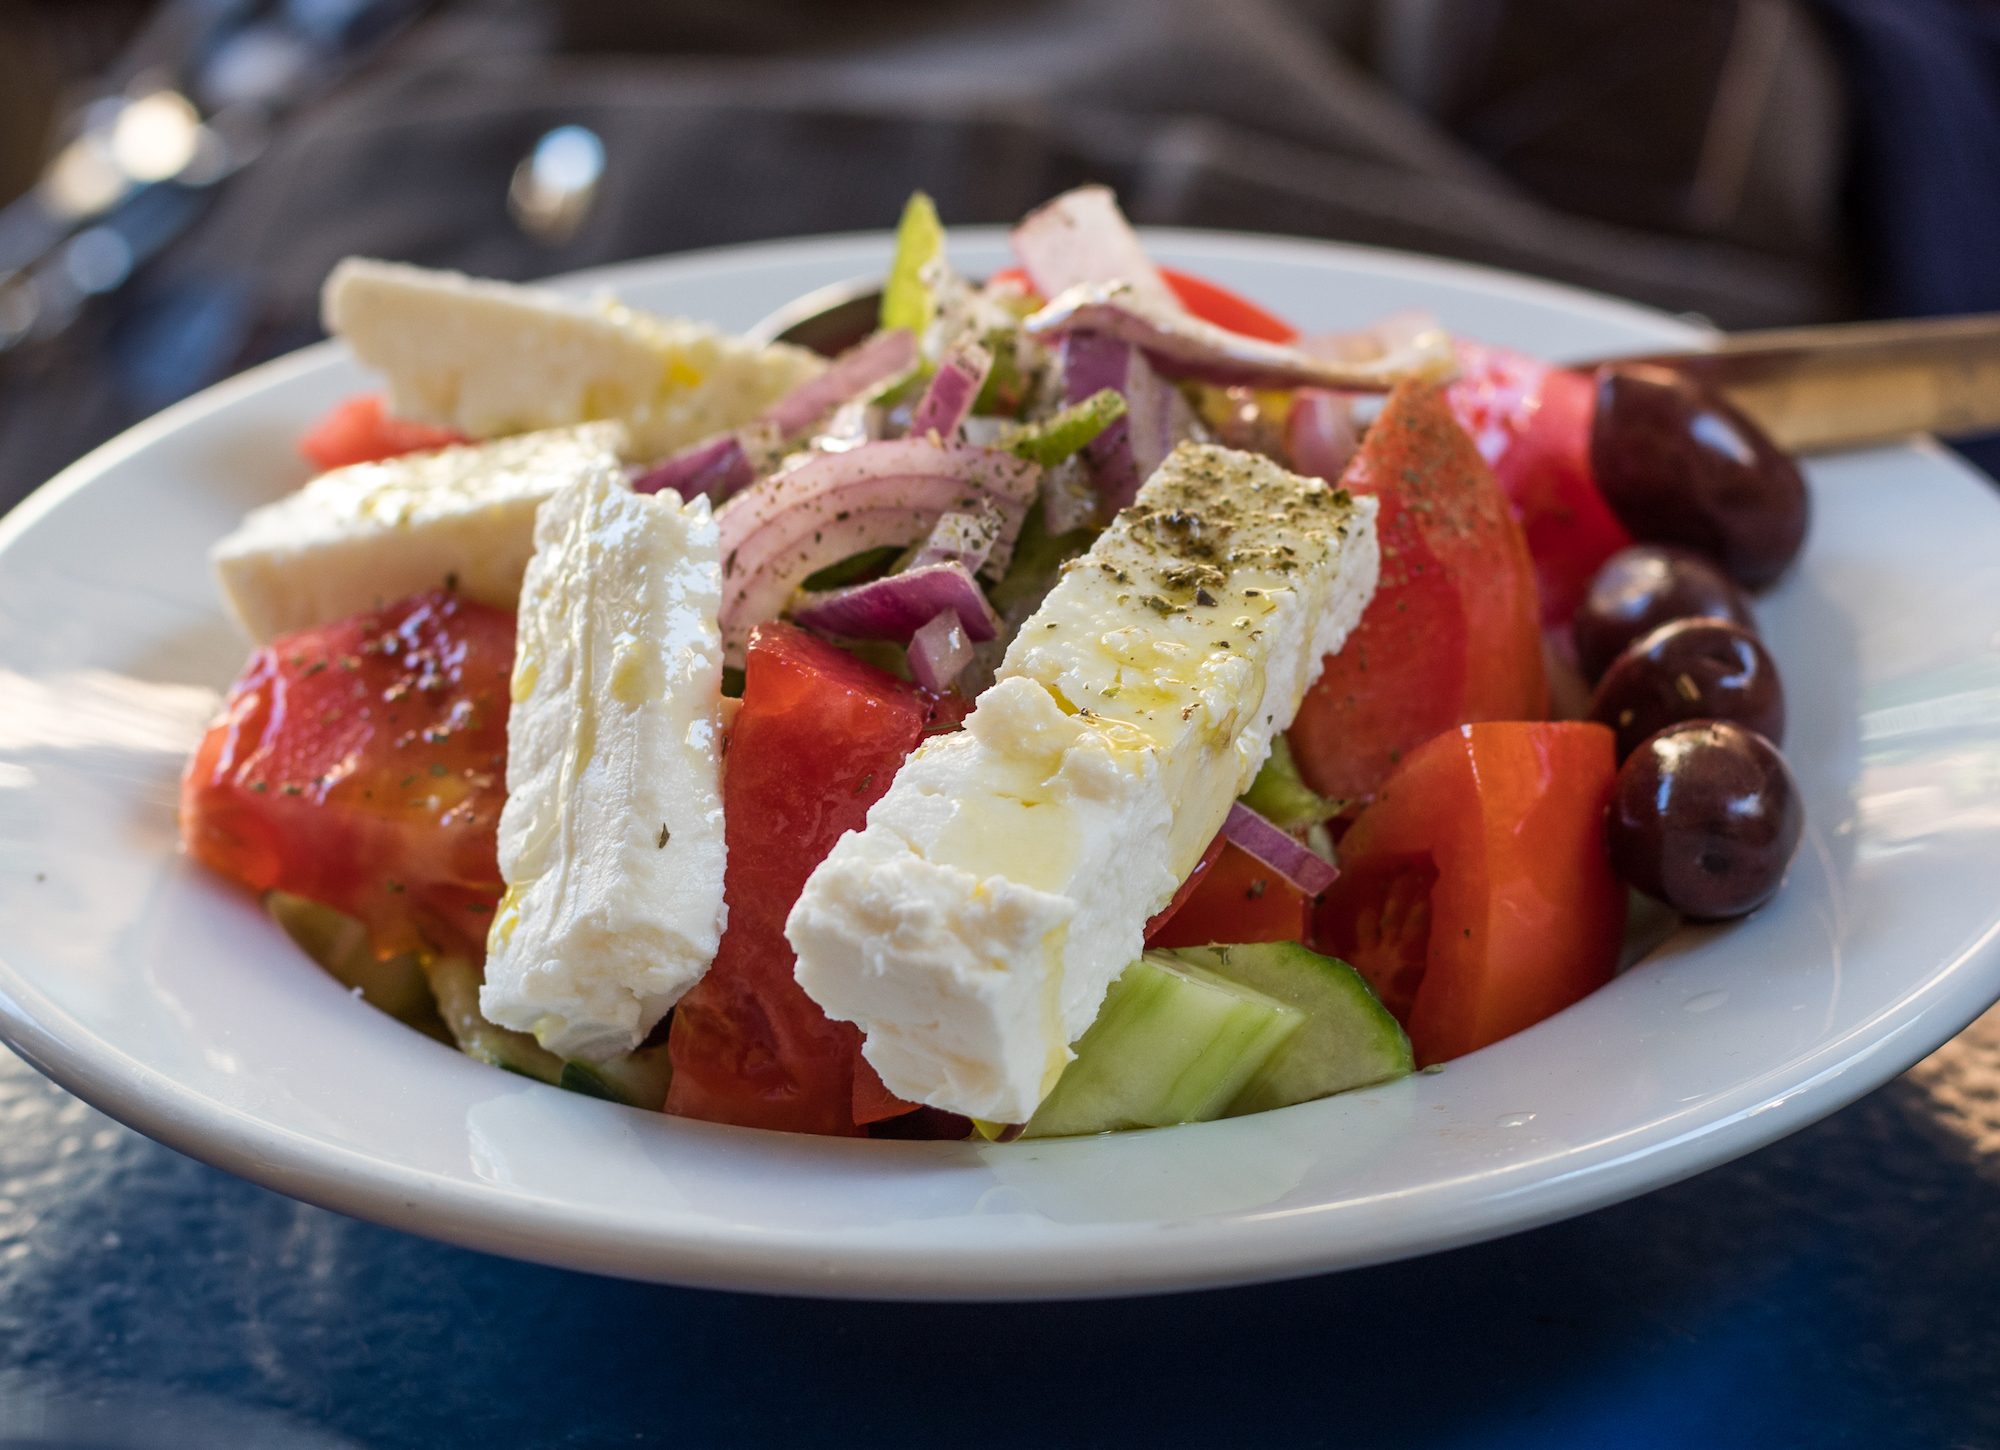 Horiatiki Salad (Greek village salad)